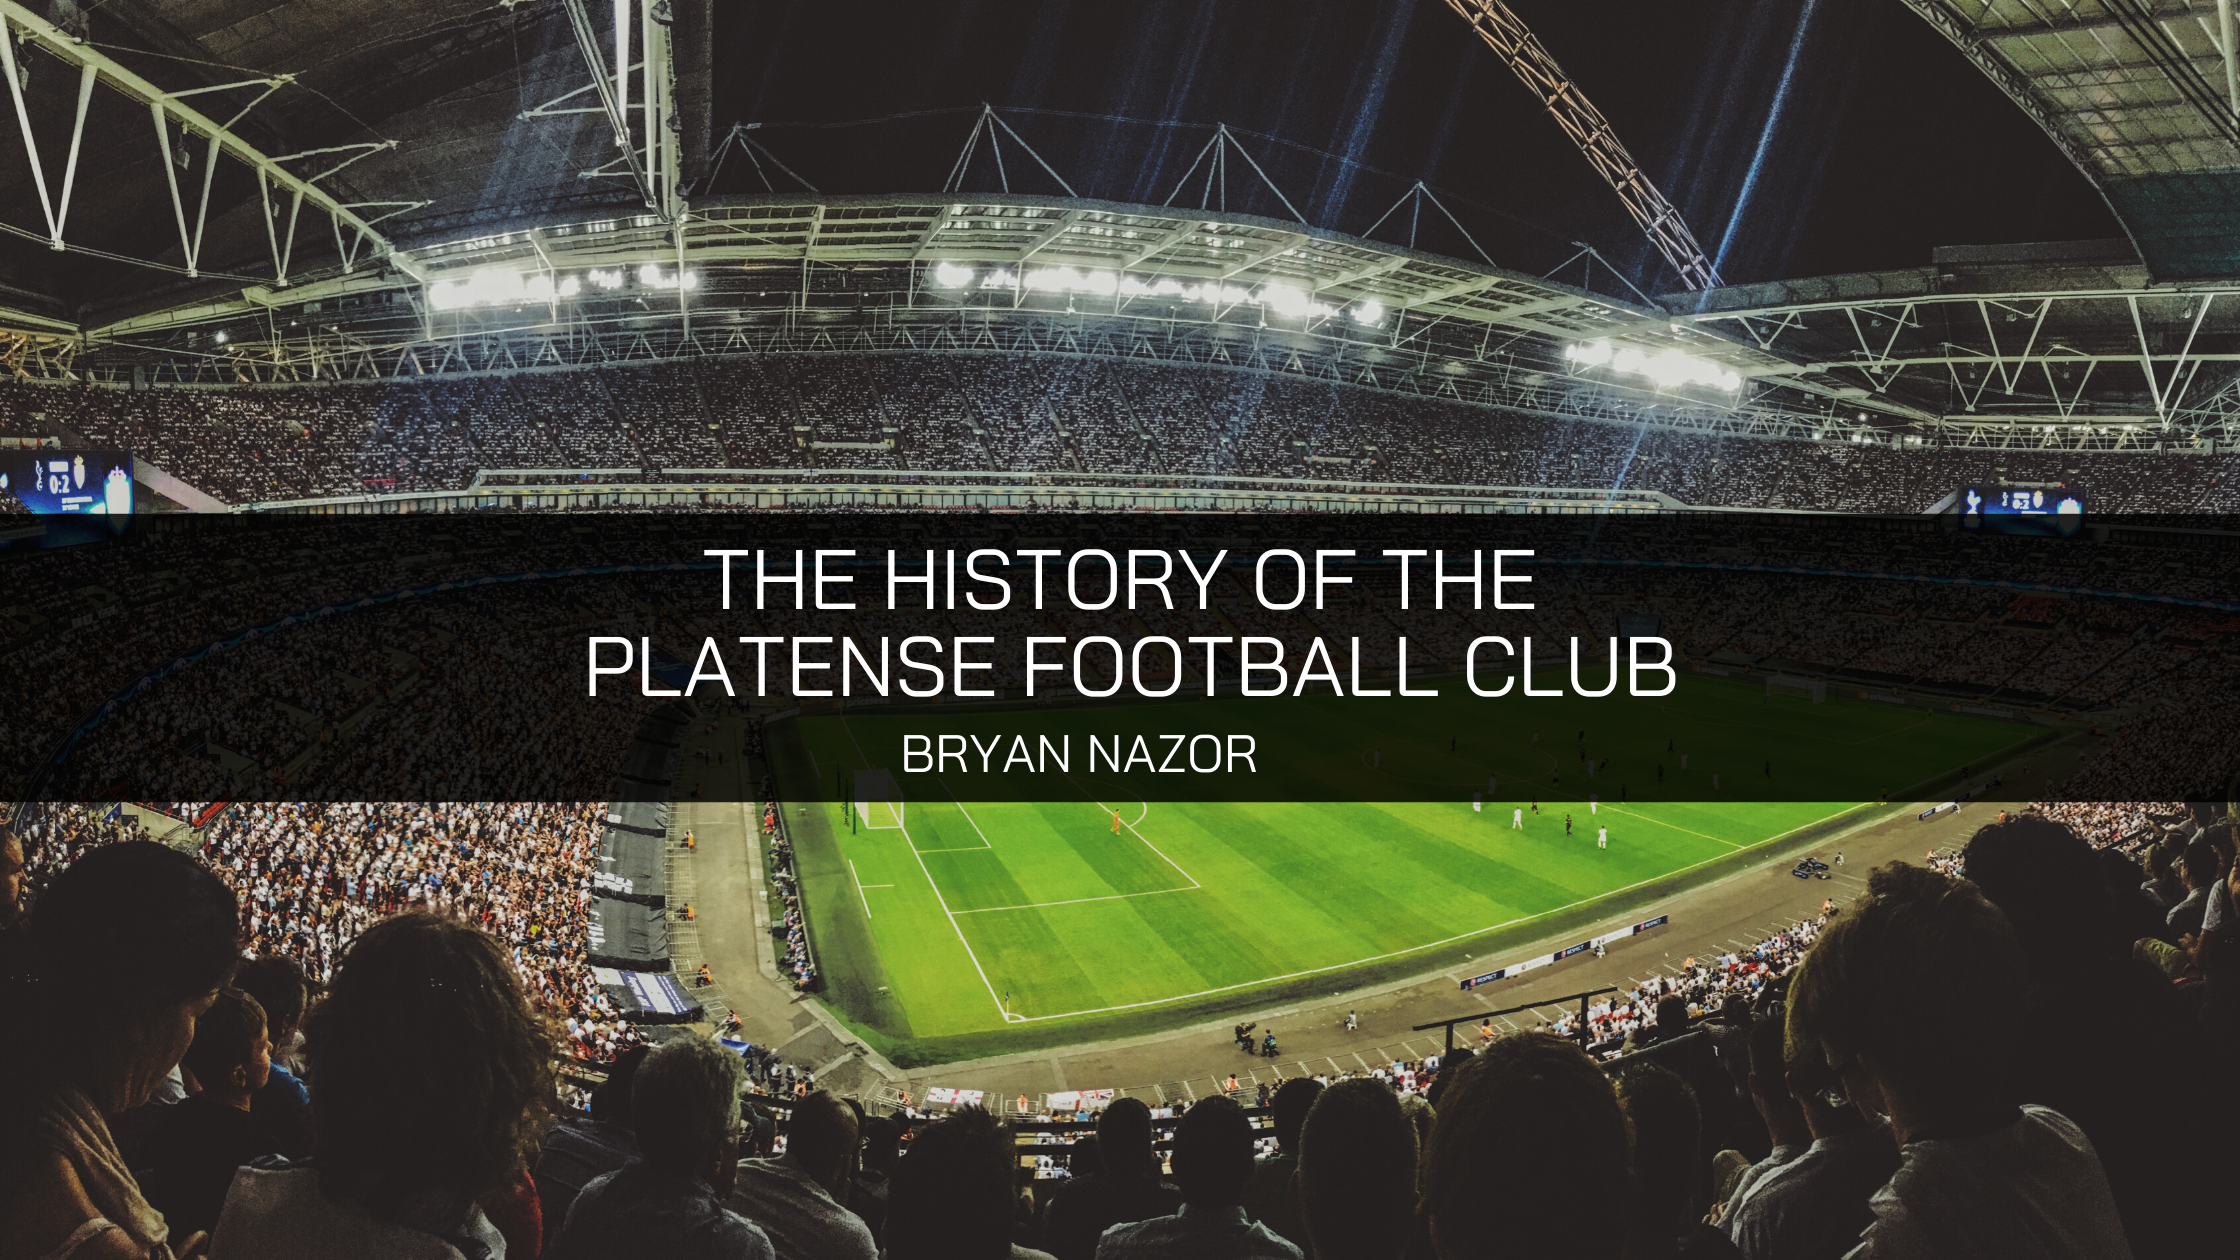 Former Professional Soccer Player Bryan Nazor Discusses the History of the Platense Football Club